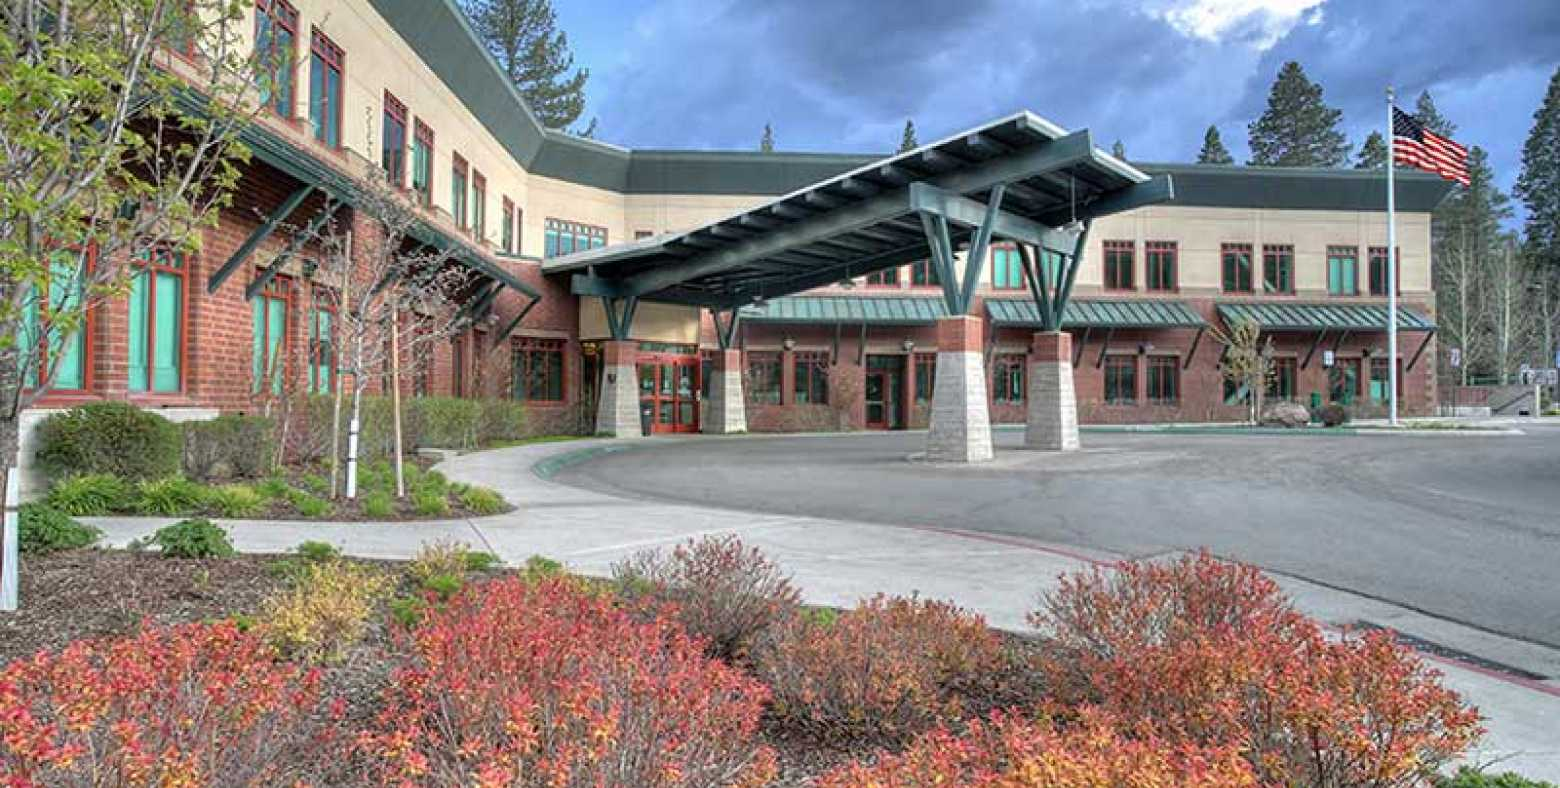 Front of Tahoe Forest Hospital